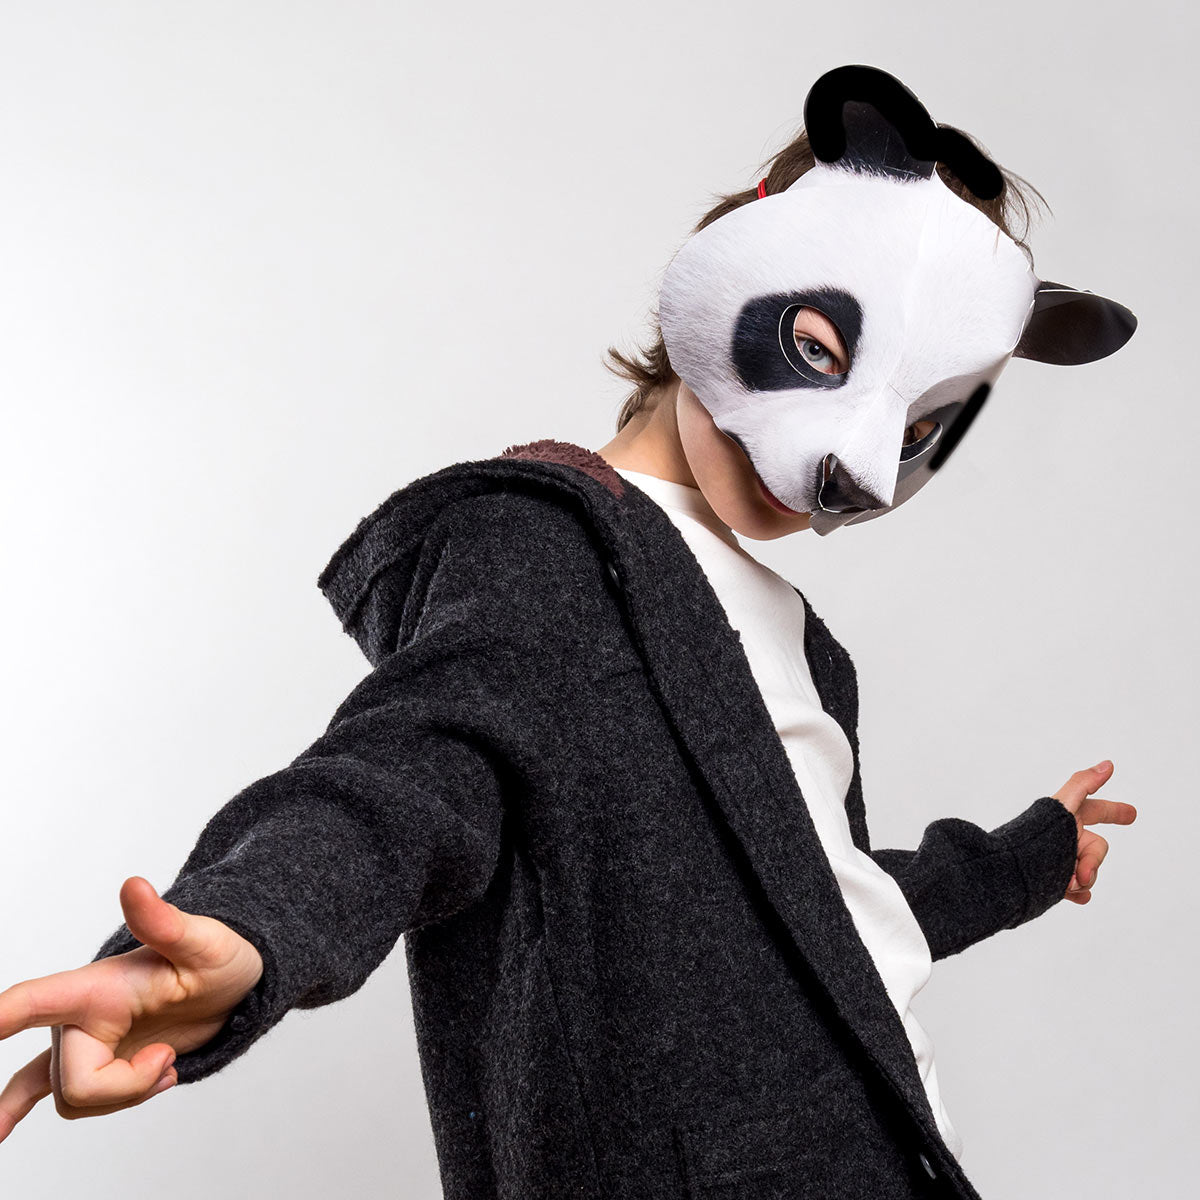 Panda mask – Cool Panda dancing